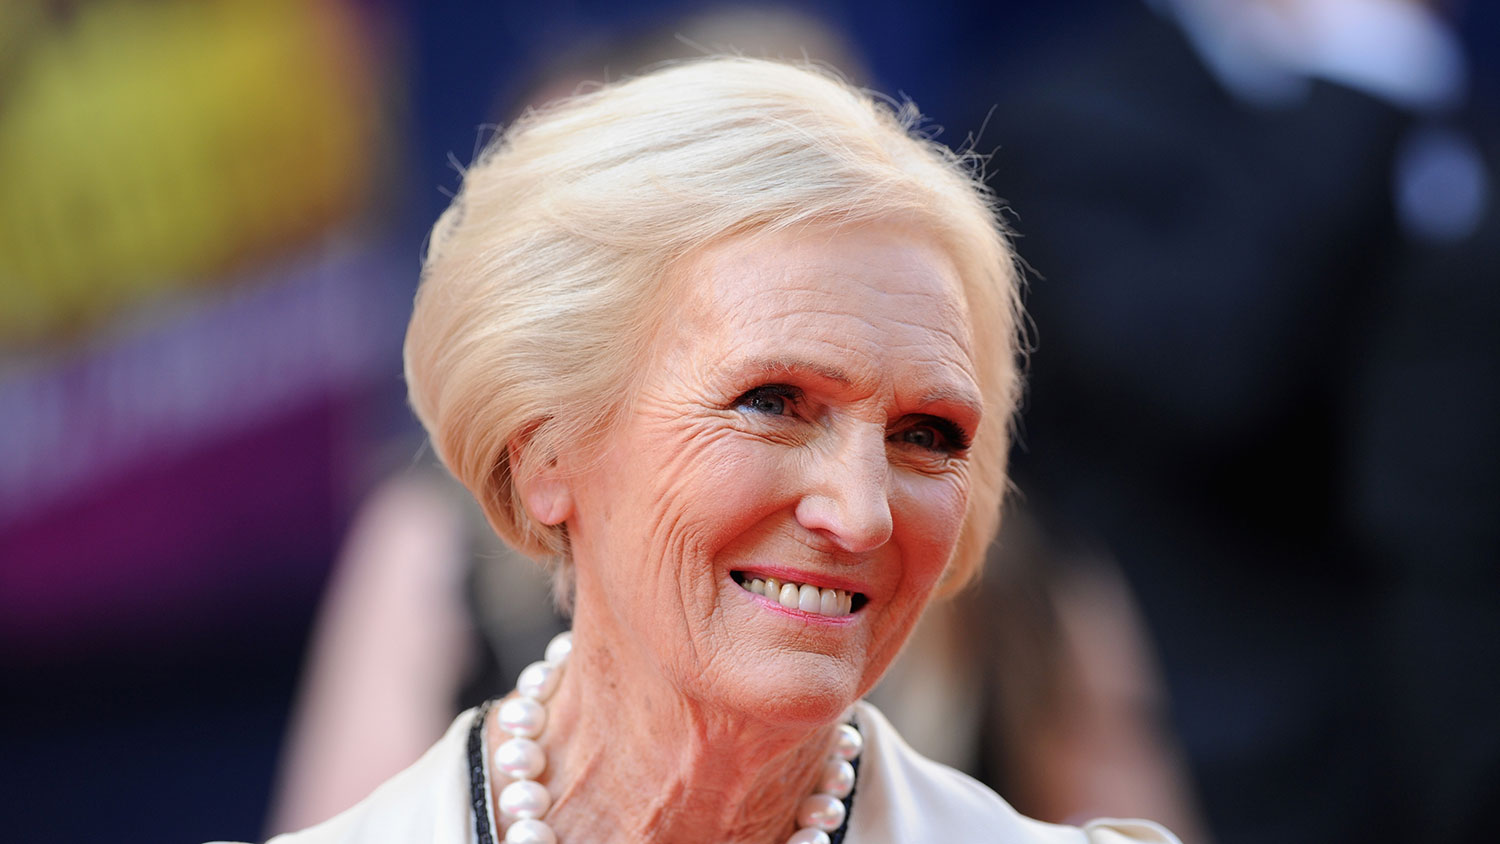 Does Scone Rhyme With 'Cone' or 'Gone?' Mary Berry Weighs In on the Debate